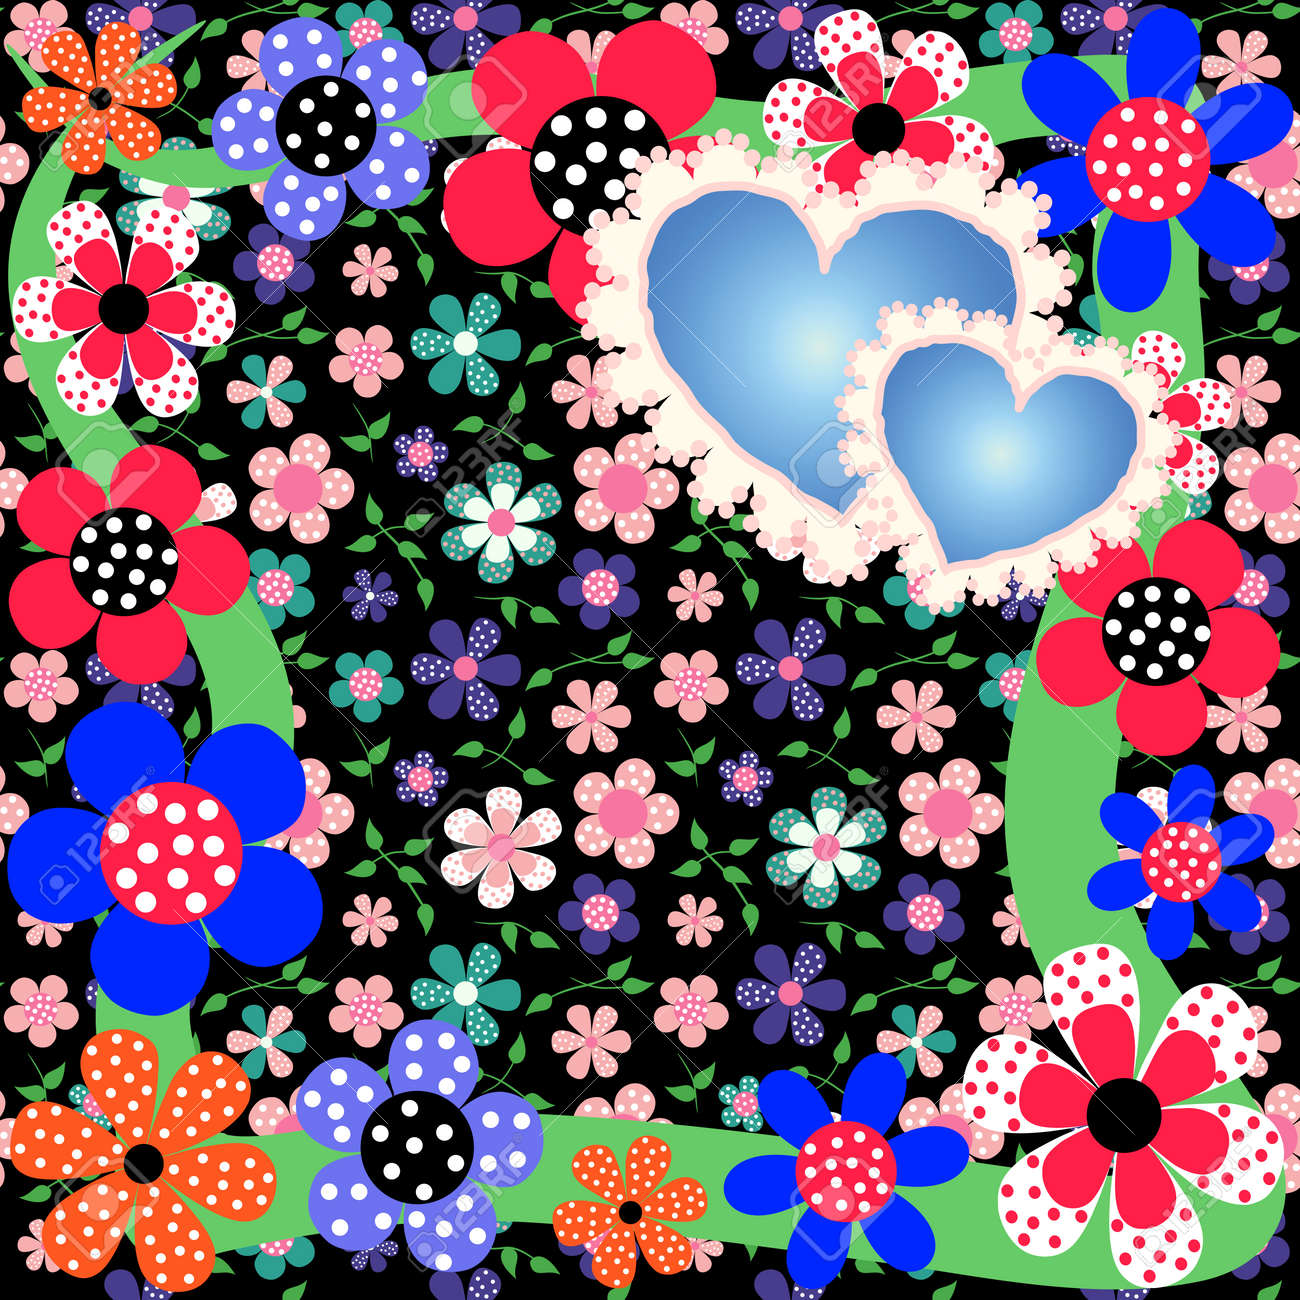 Bright romantic floral background with pretty flowers and hearts bright romantic floral background with pretty flowers and hearts this image can be used for mightylinksfo